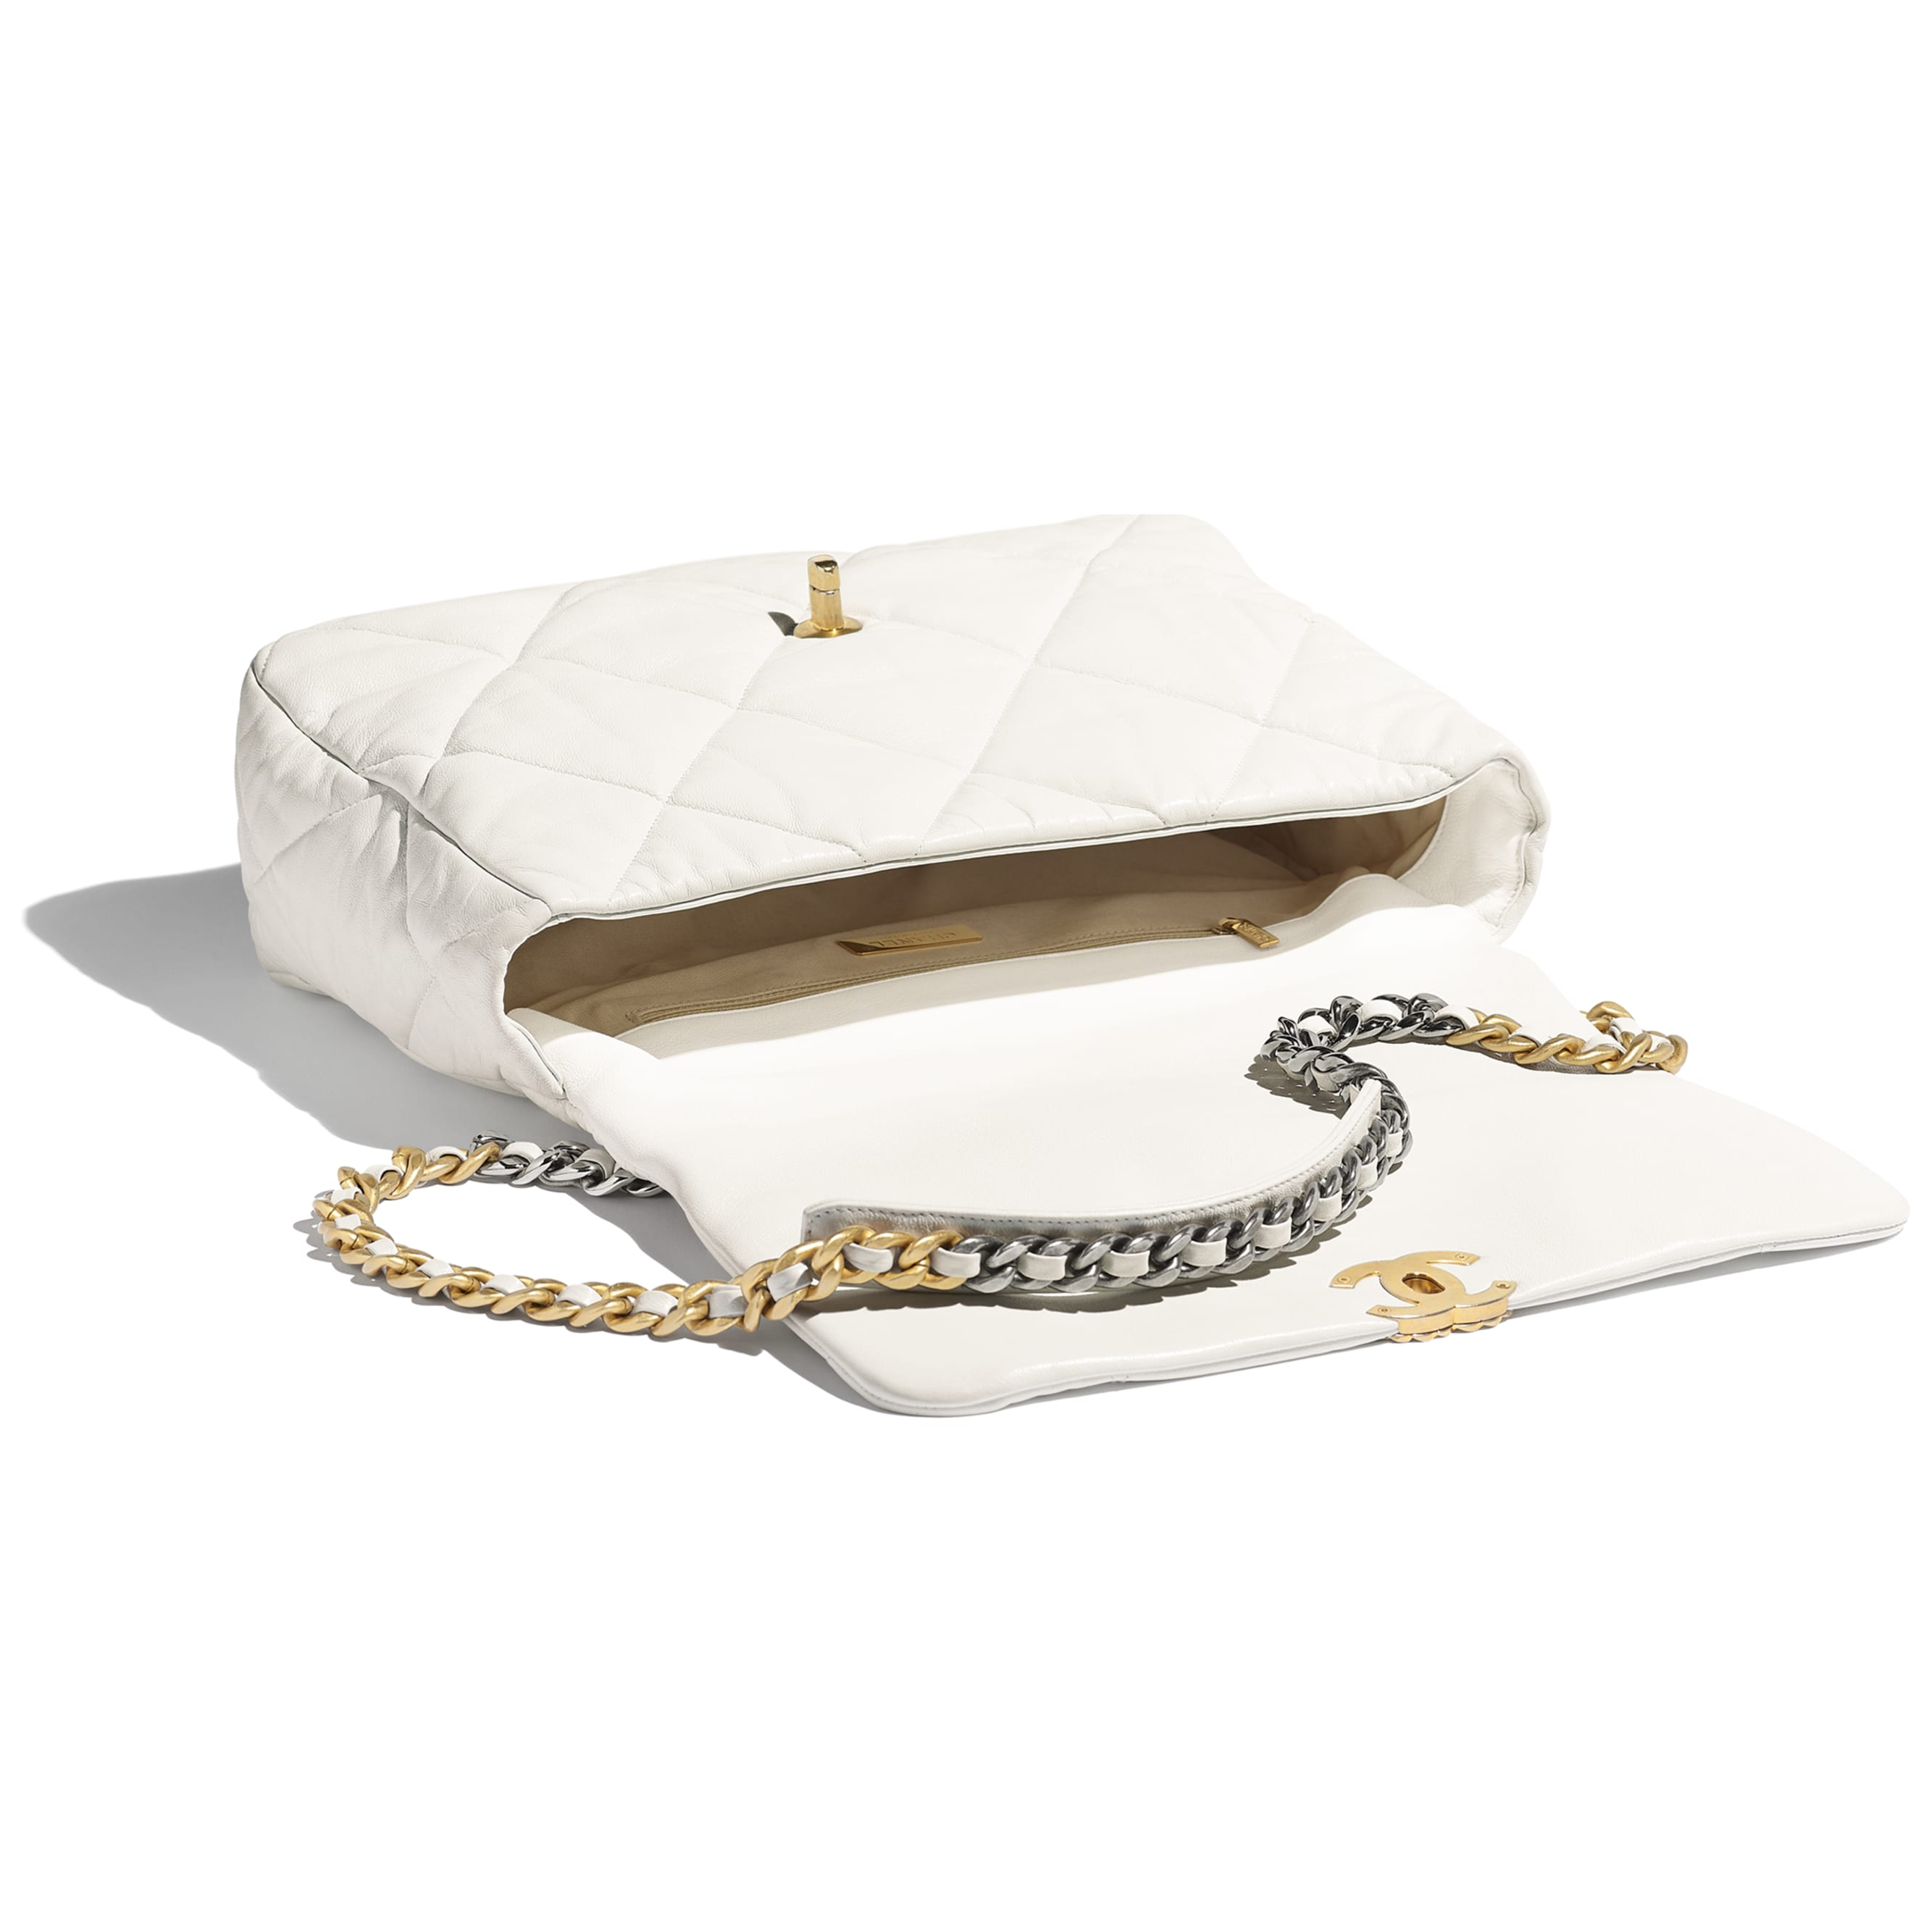 CHANEL 19 Maxi Flap Bag - White - Goatskin, Gold-Tone, Silver-Tone & Ruthenium-Finish Metal - Other view - see standard sized version